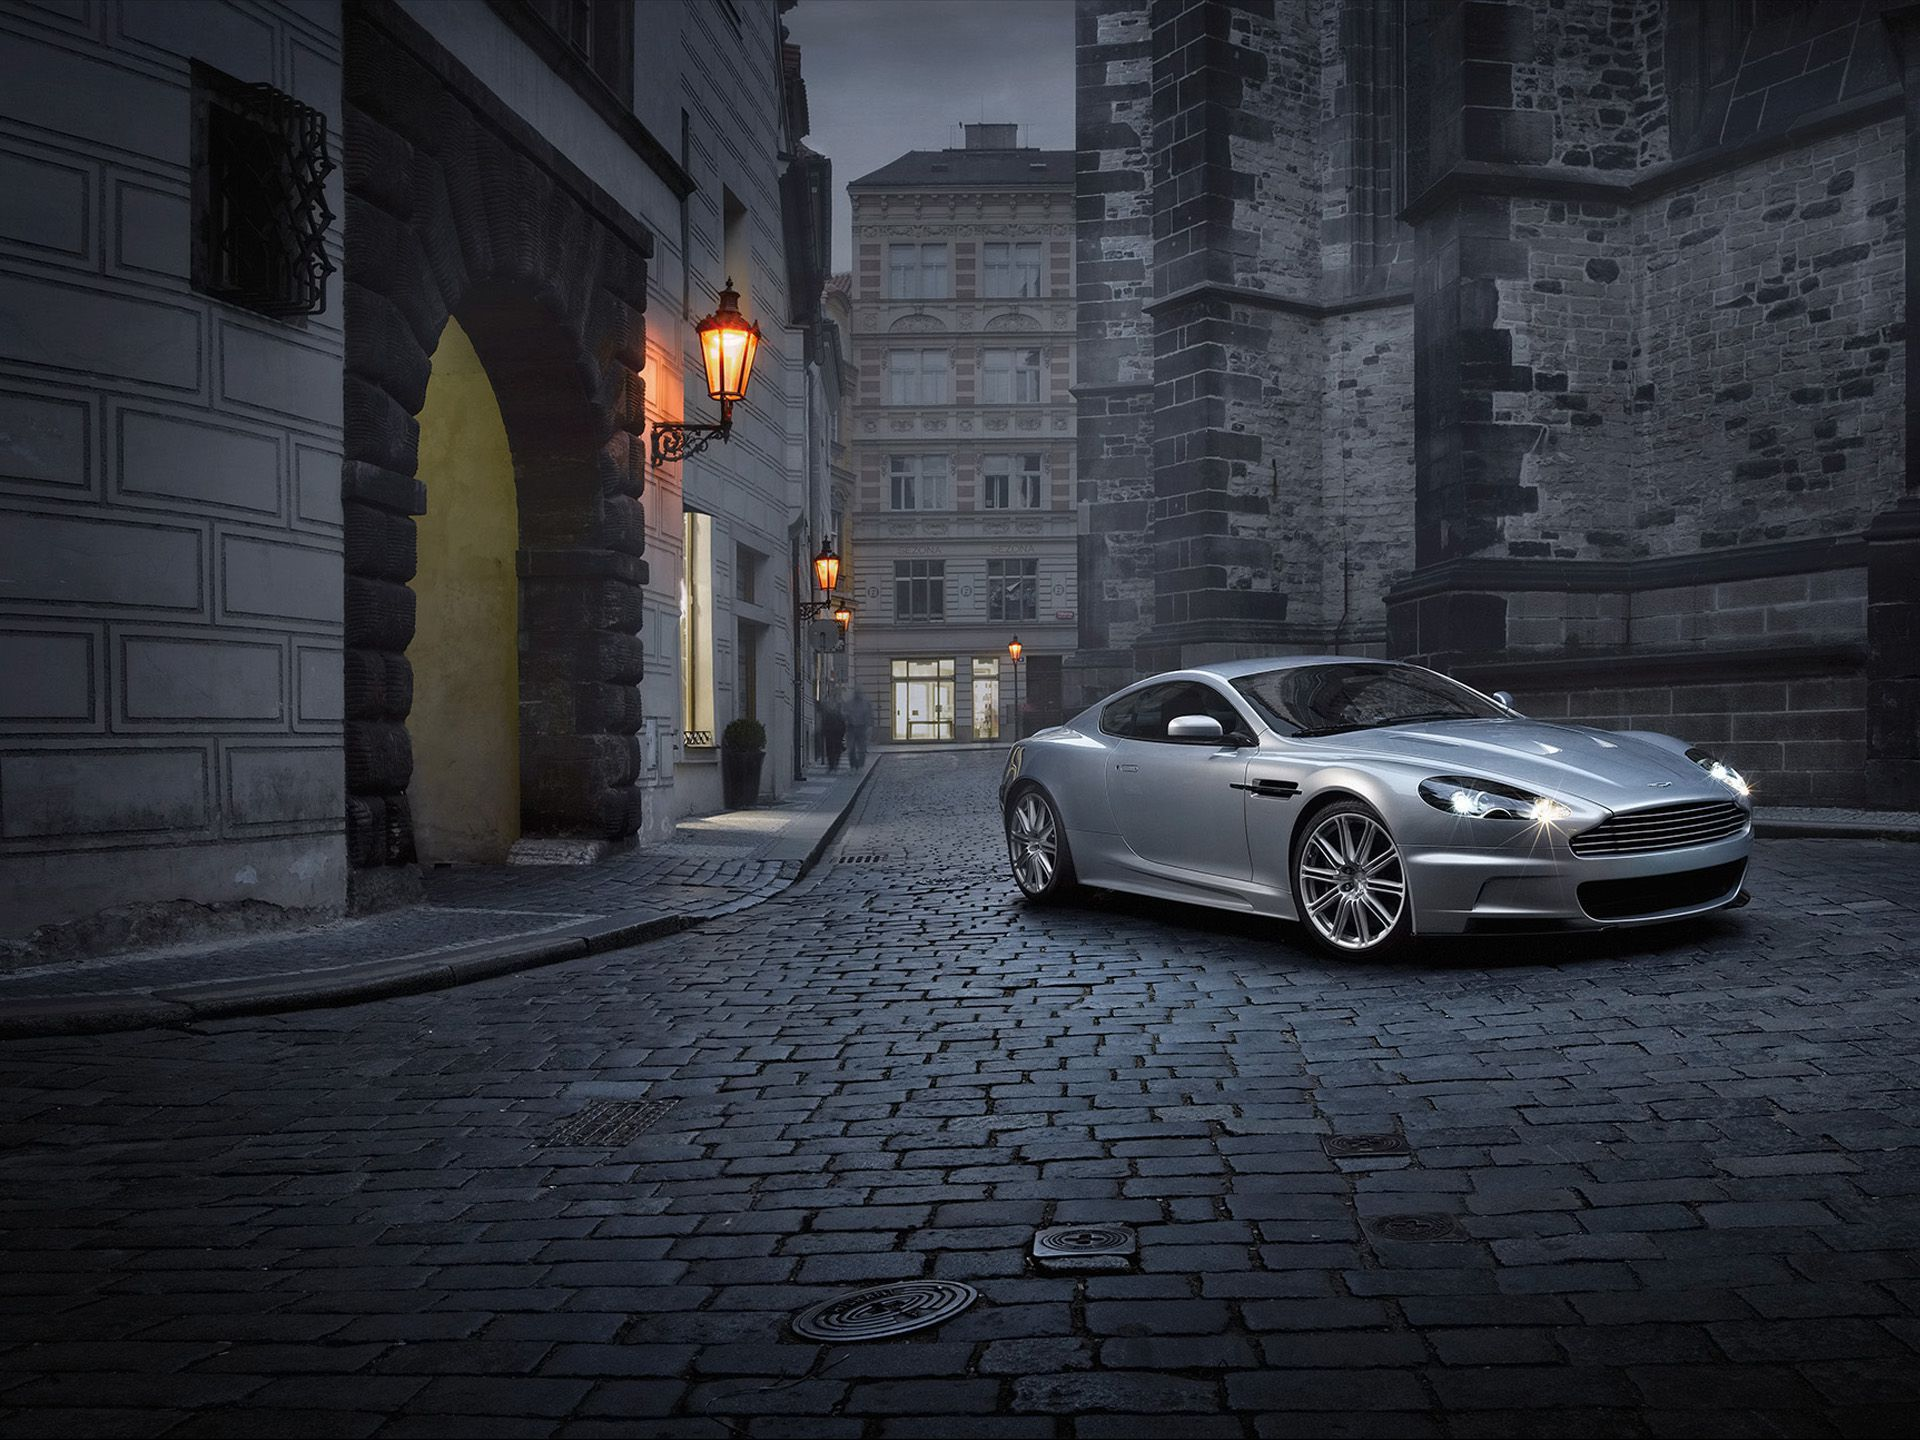 Aston Martin Db9 Background